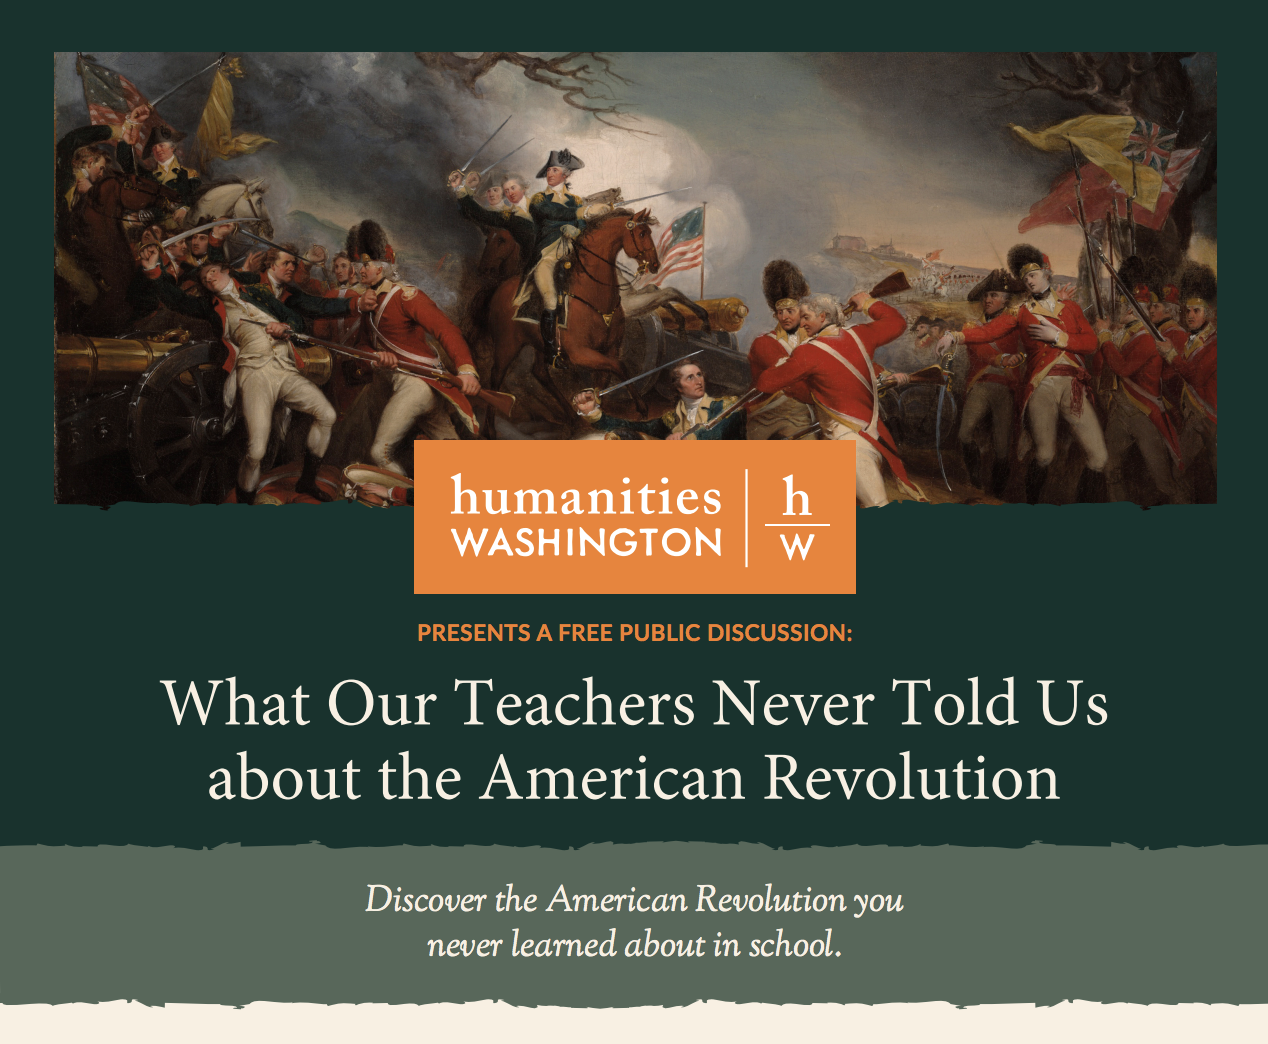 e9bb0a74c0 Discover the American Revolution you never learned about in school. Why did  Native Americans and African Americans support the British